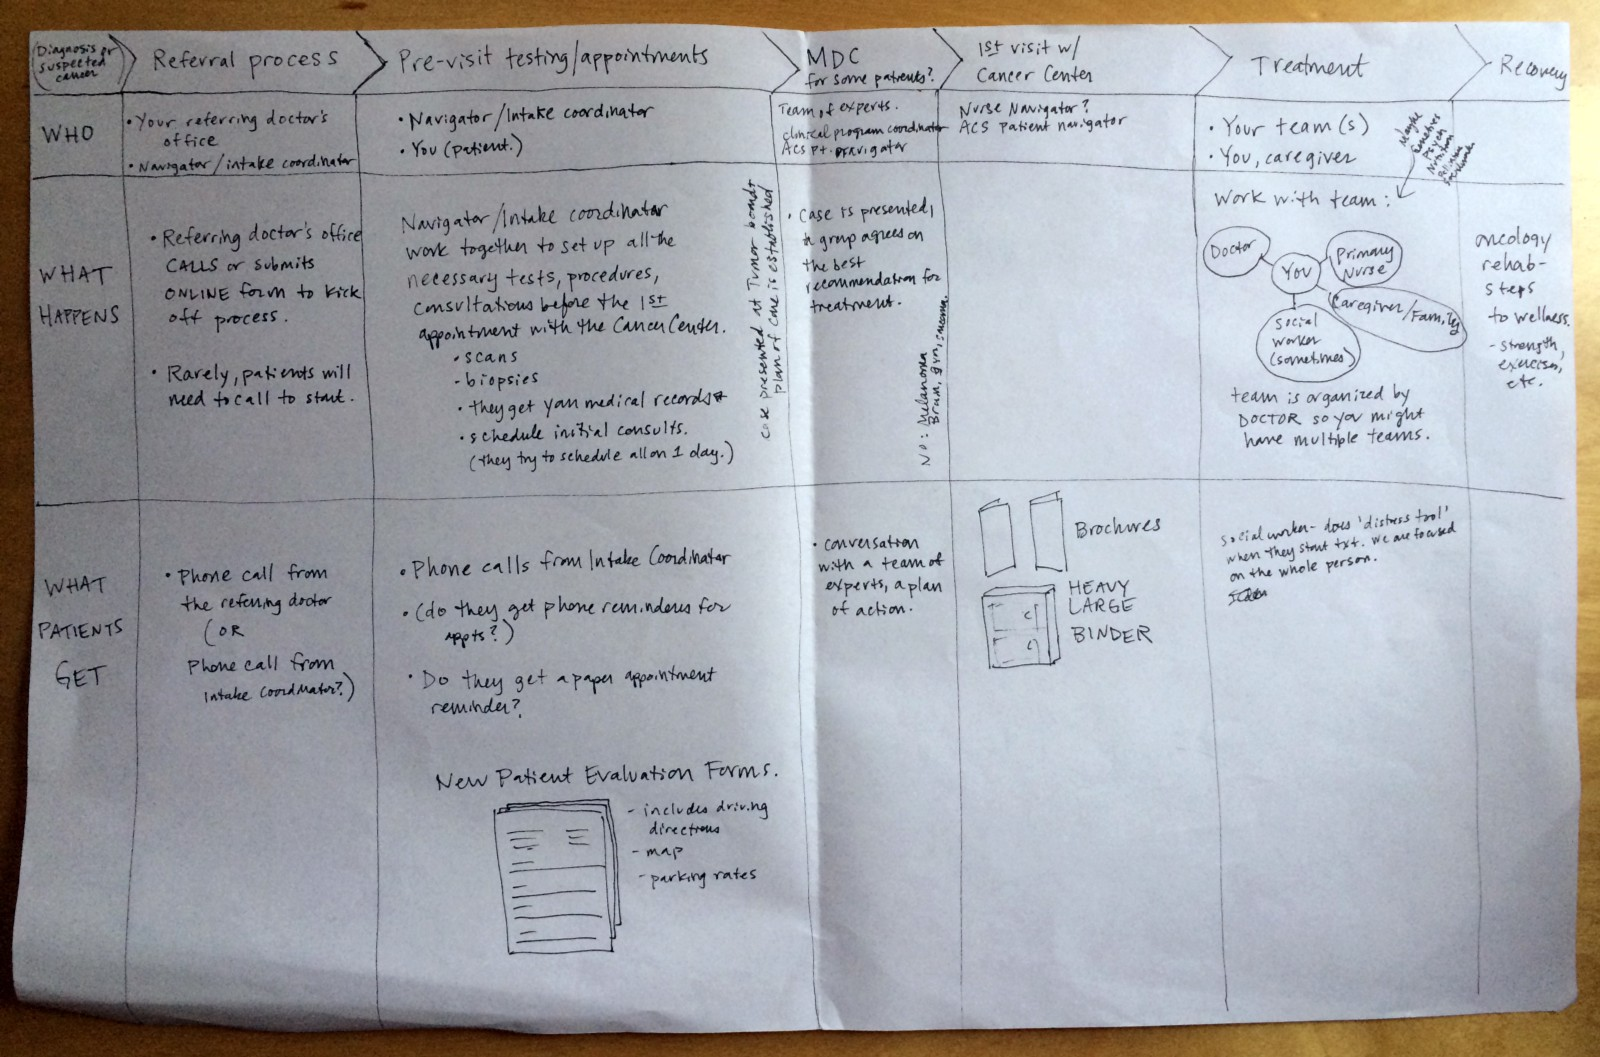 How Designers Make Hospitals Awesome Hsxd Healthcare Systems By Camel Washing Machine Wiring Diagram Roughly Making Sense Of The Cancer Patient Journey What Happens Who Is Involved Info Patients Receive I Developed This Through Conversations With